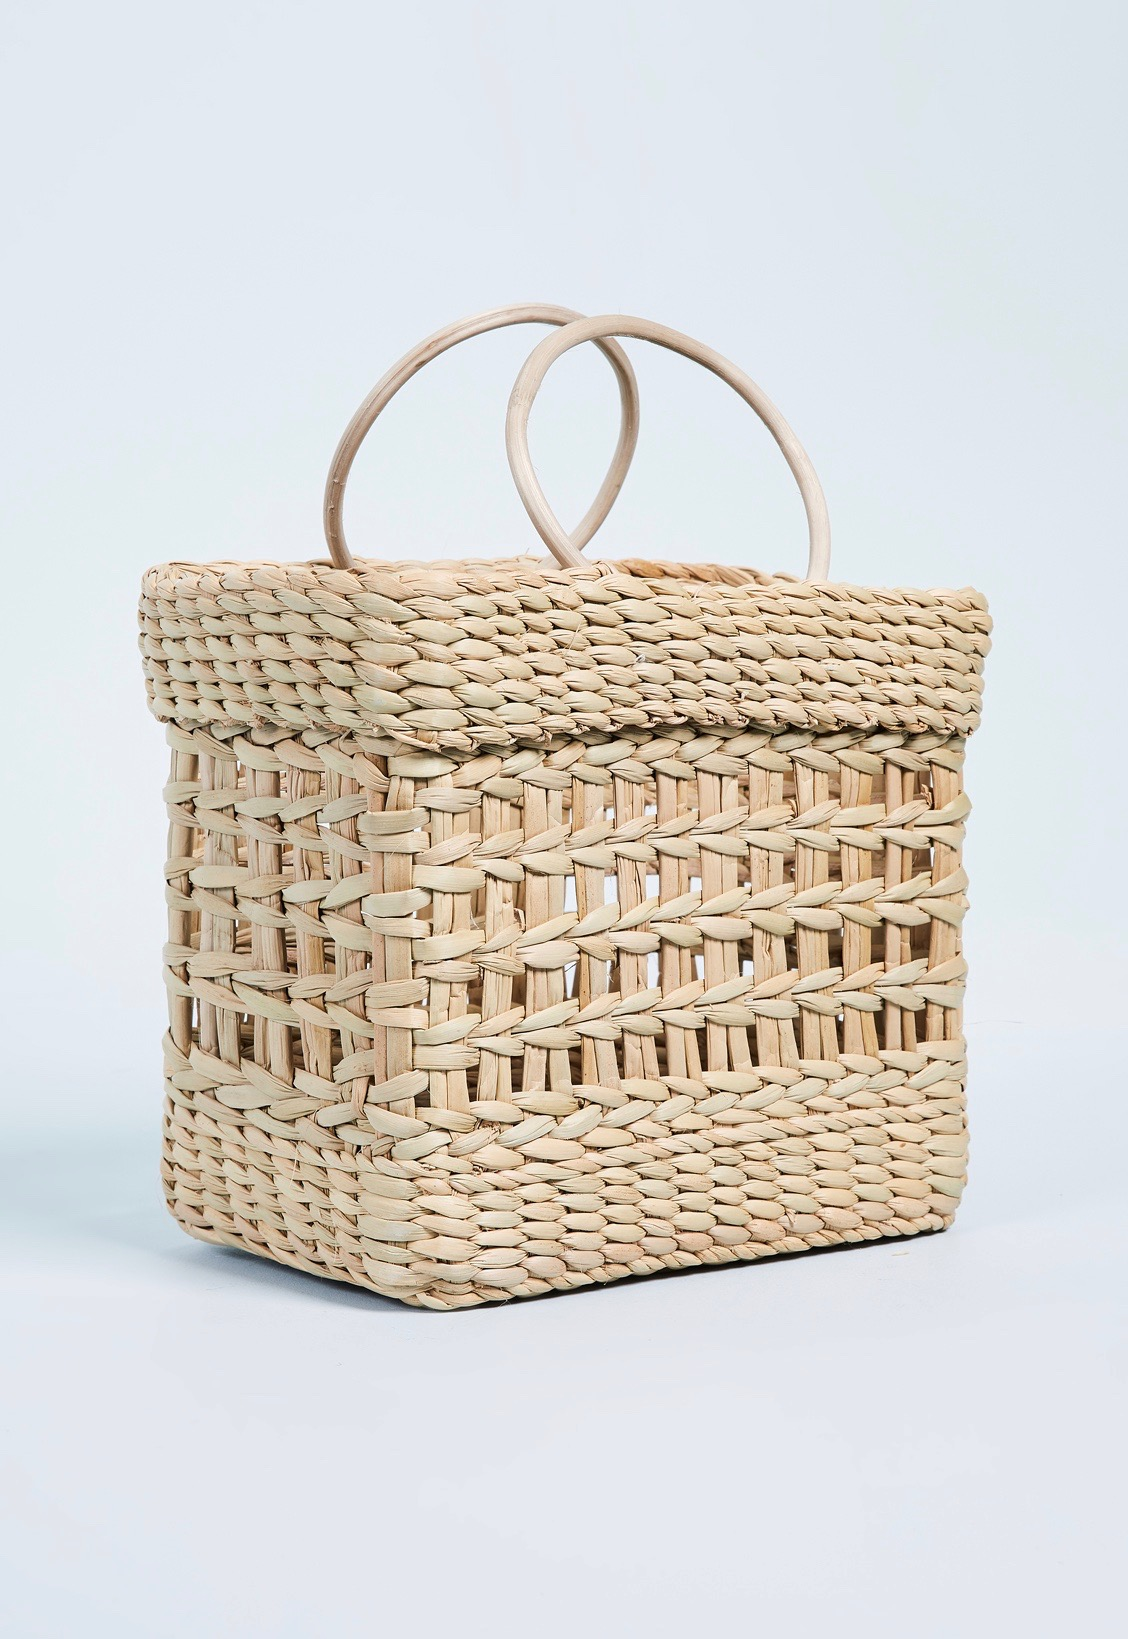 Straw Tote Bag Round Handles Boxy Shape